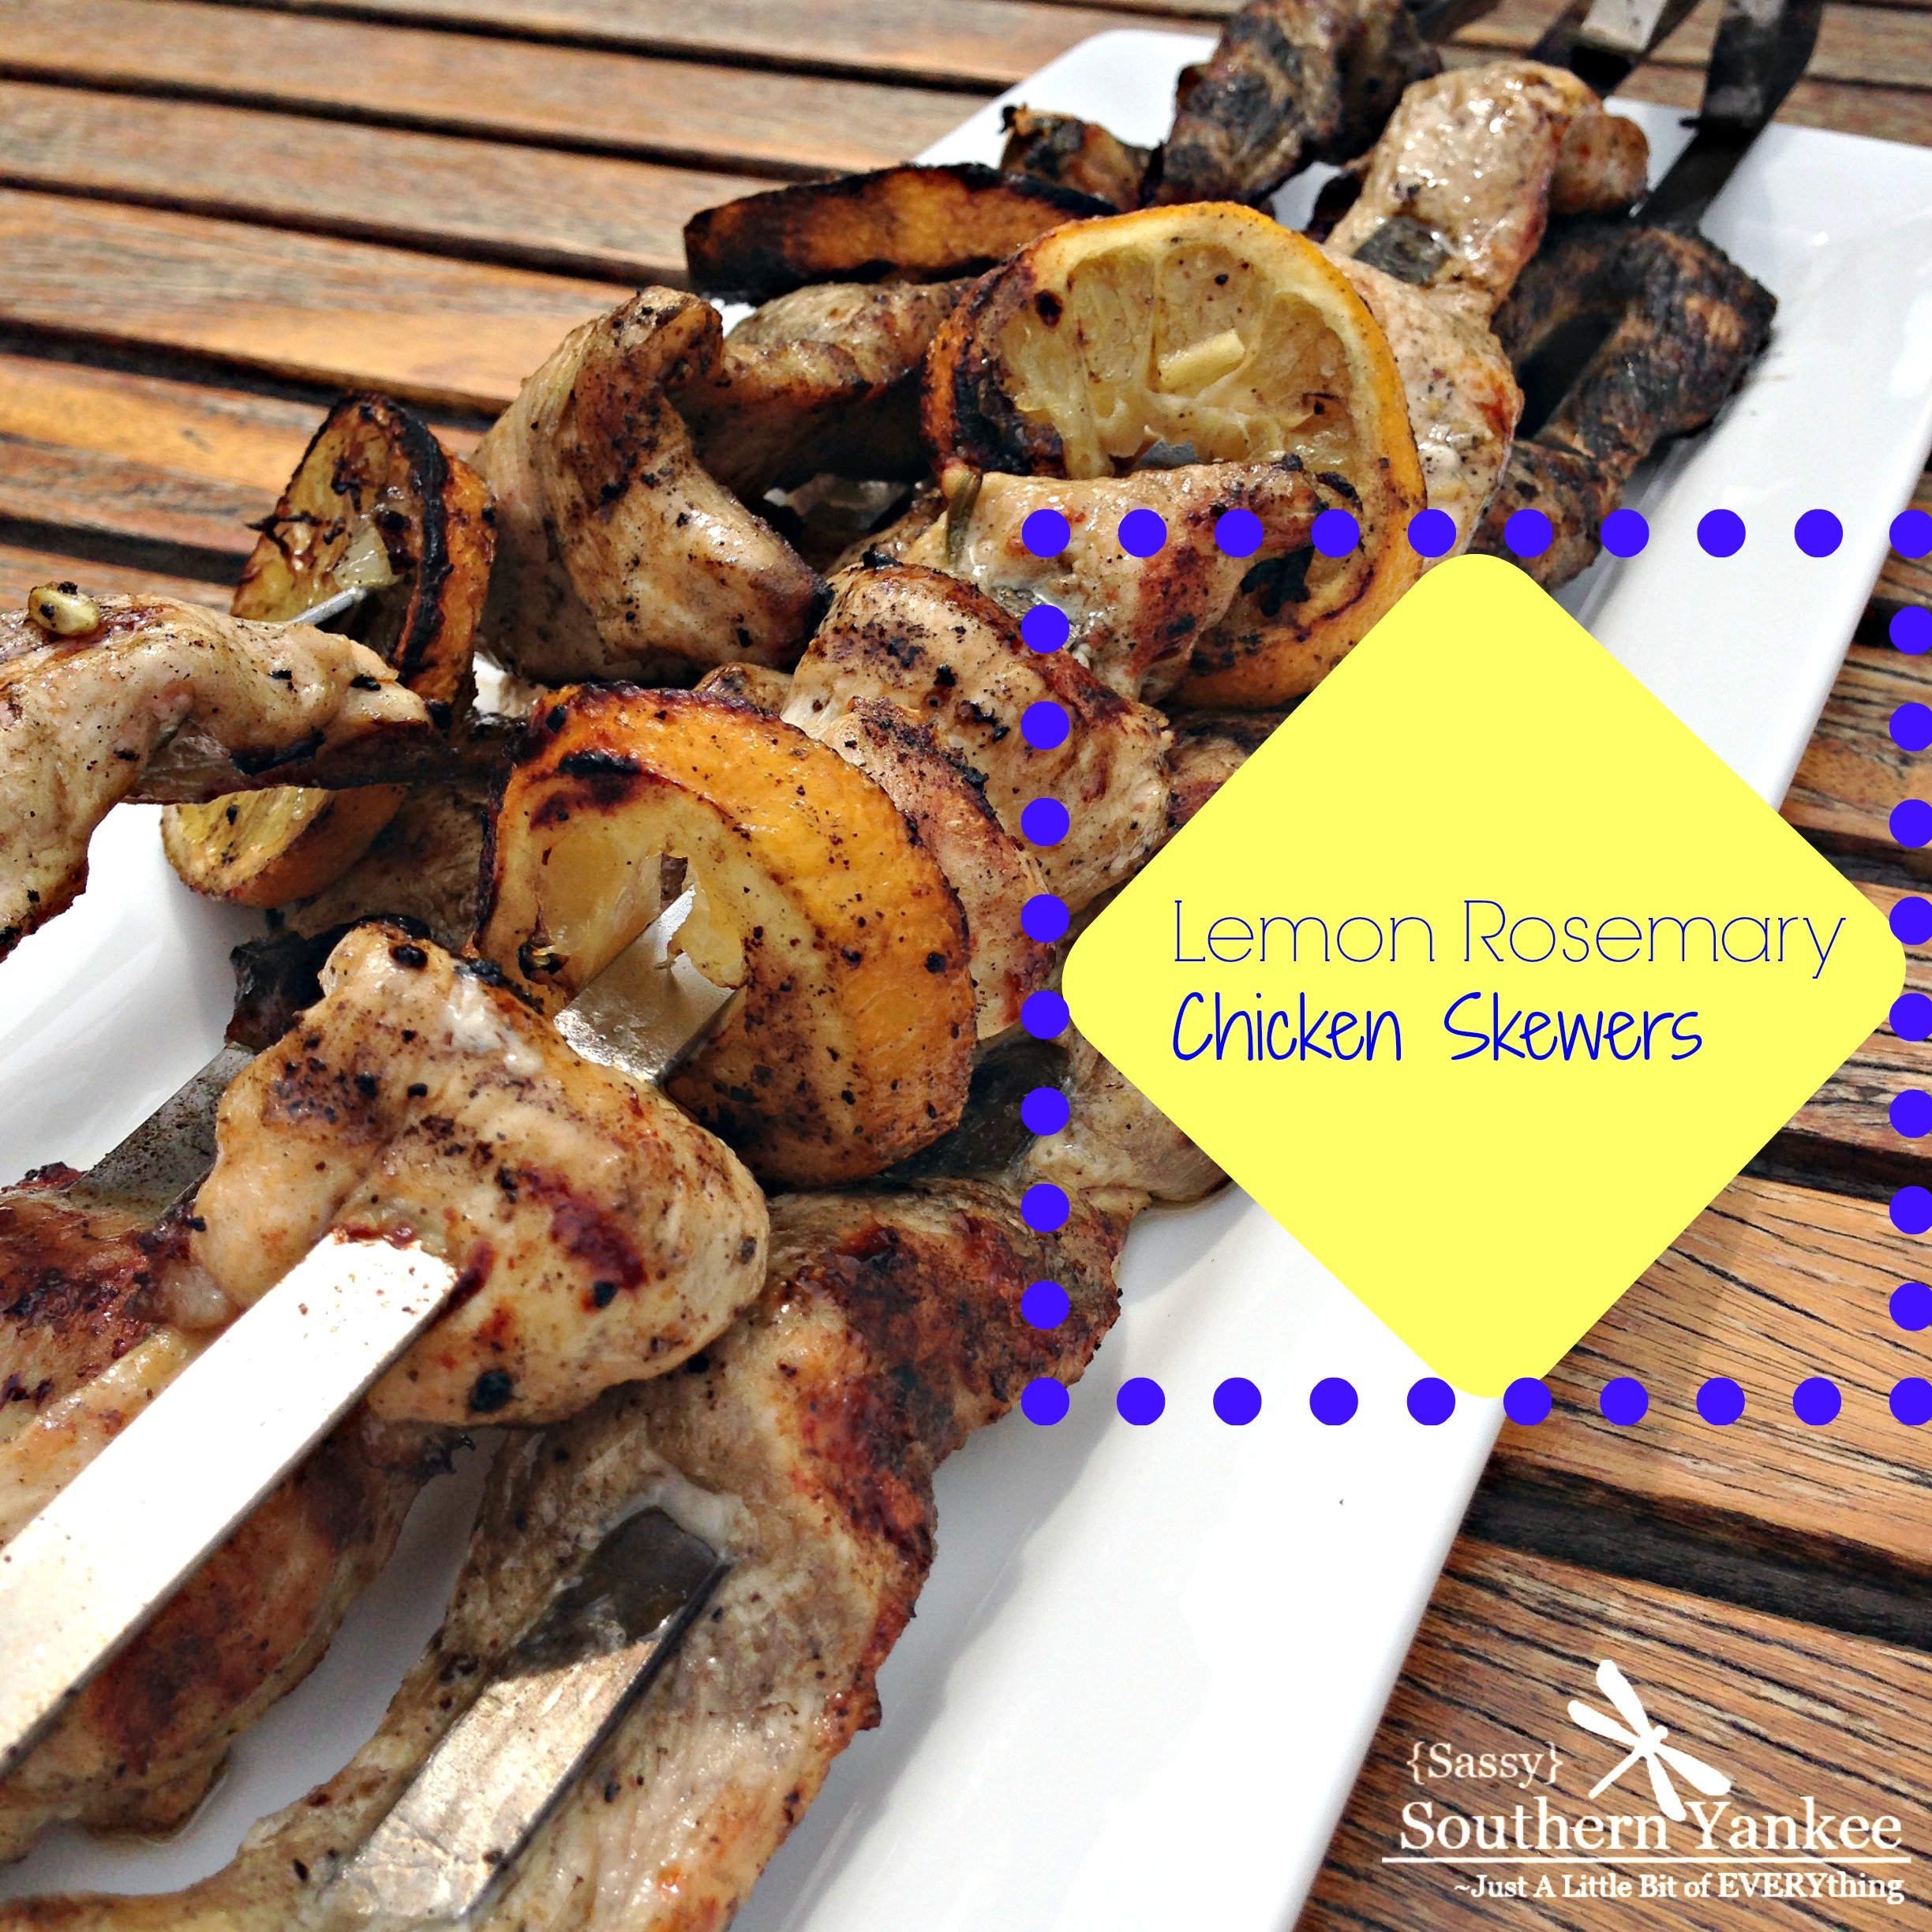 Lemon Rosemary Chicken Skewers 4 | Sassy Southern Yankee